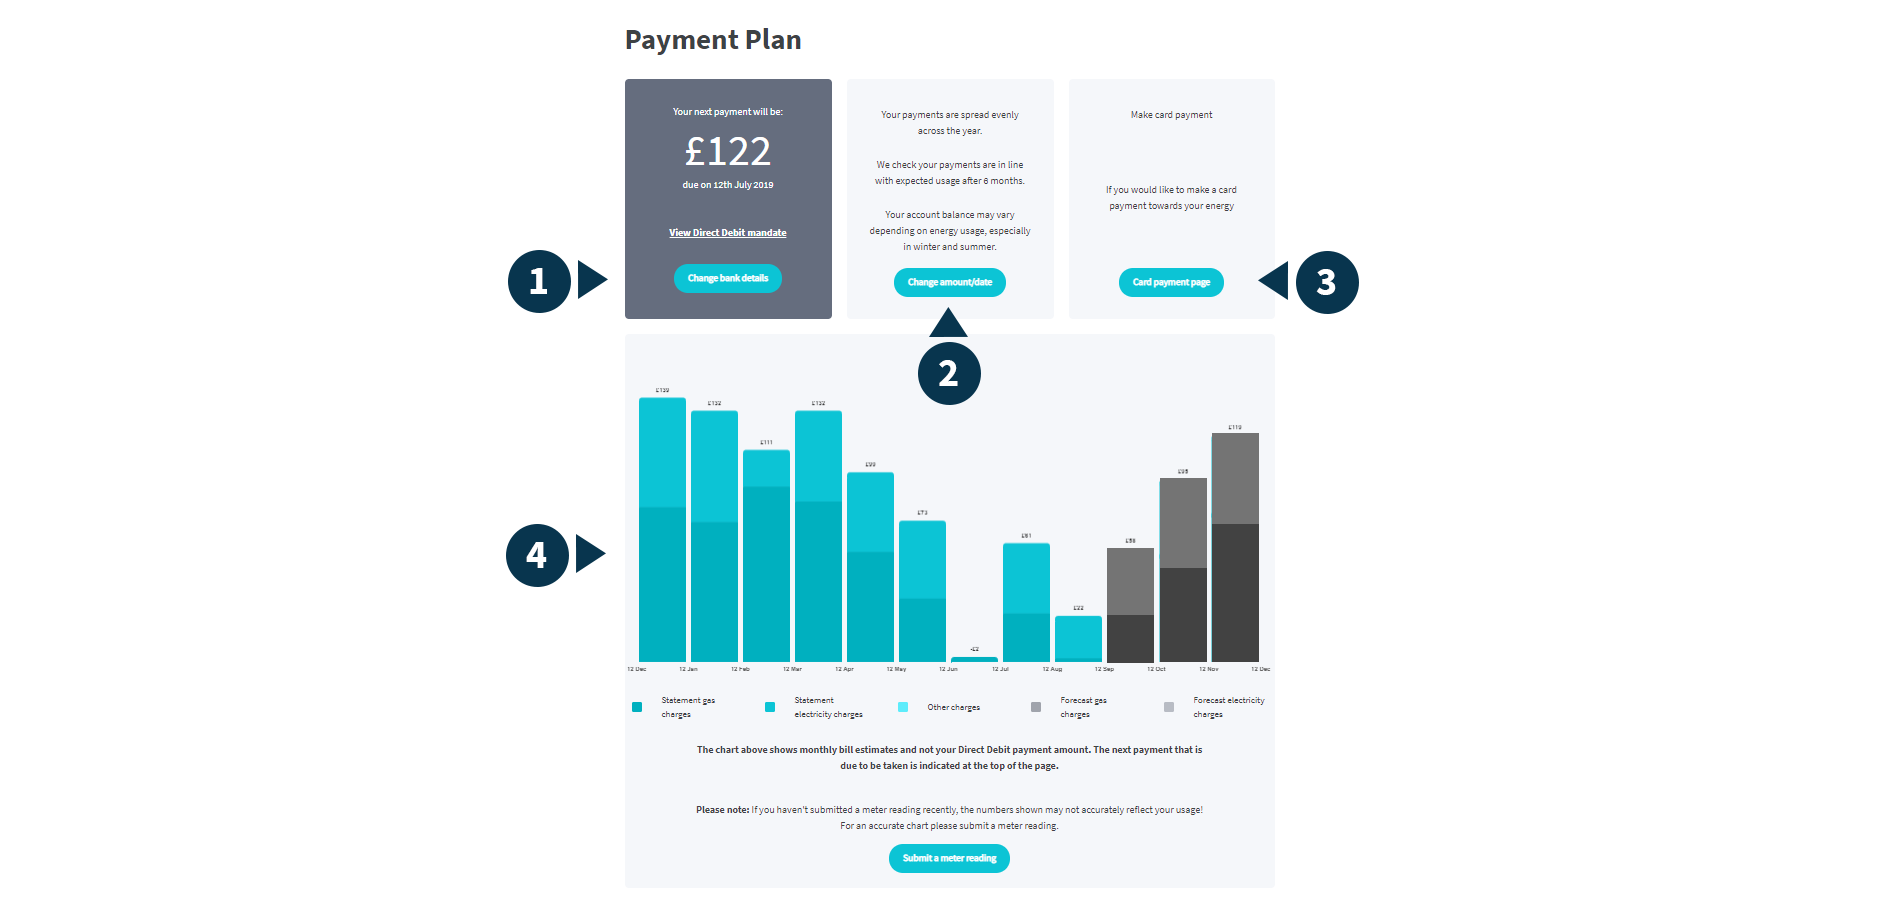 Screenshot of an example payment plan page with parts numbered 1 to 4